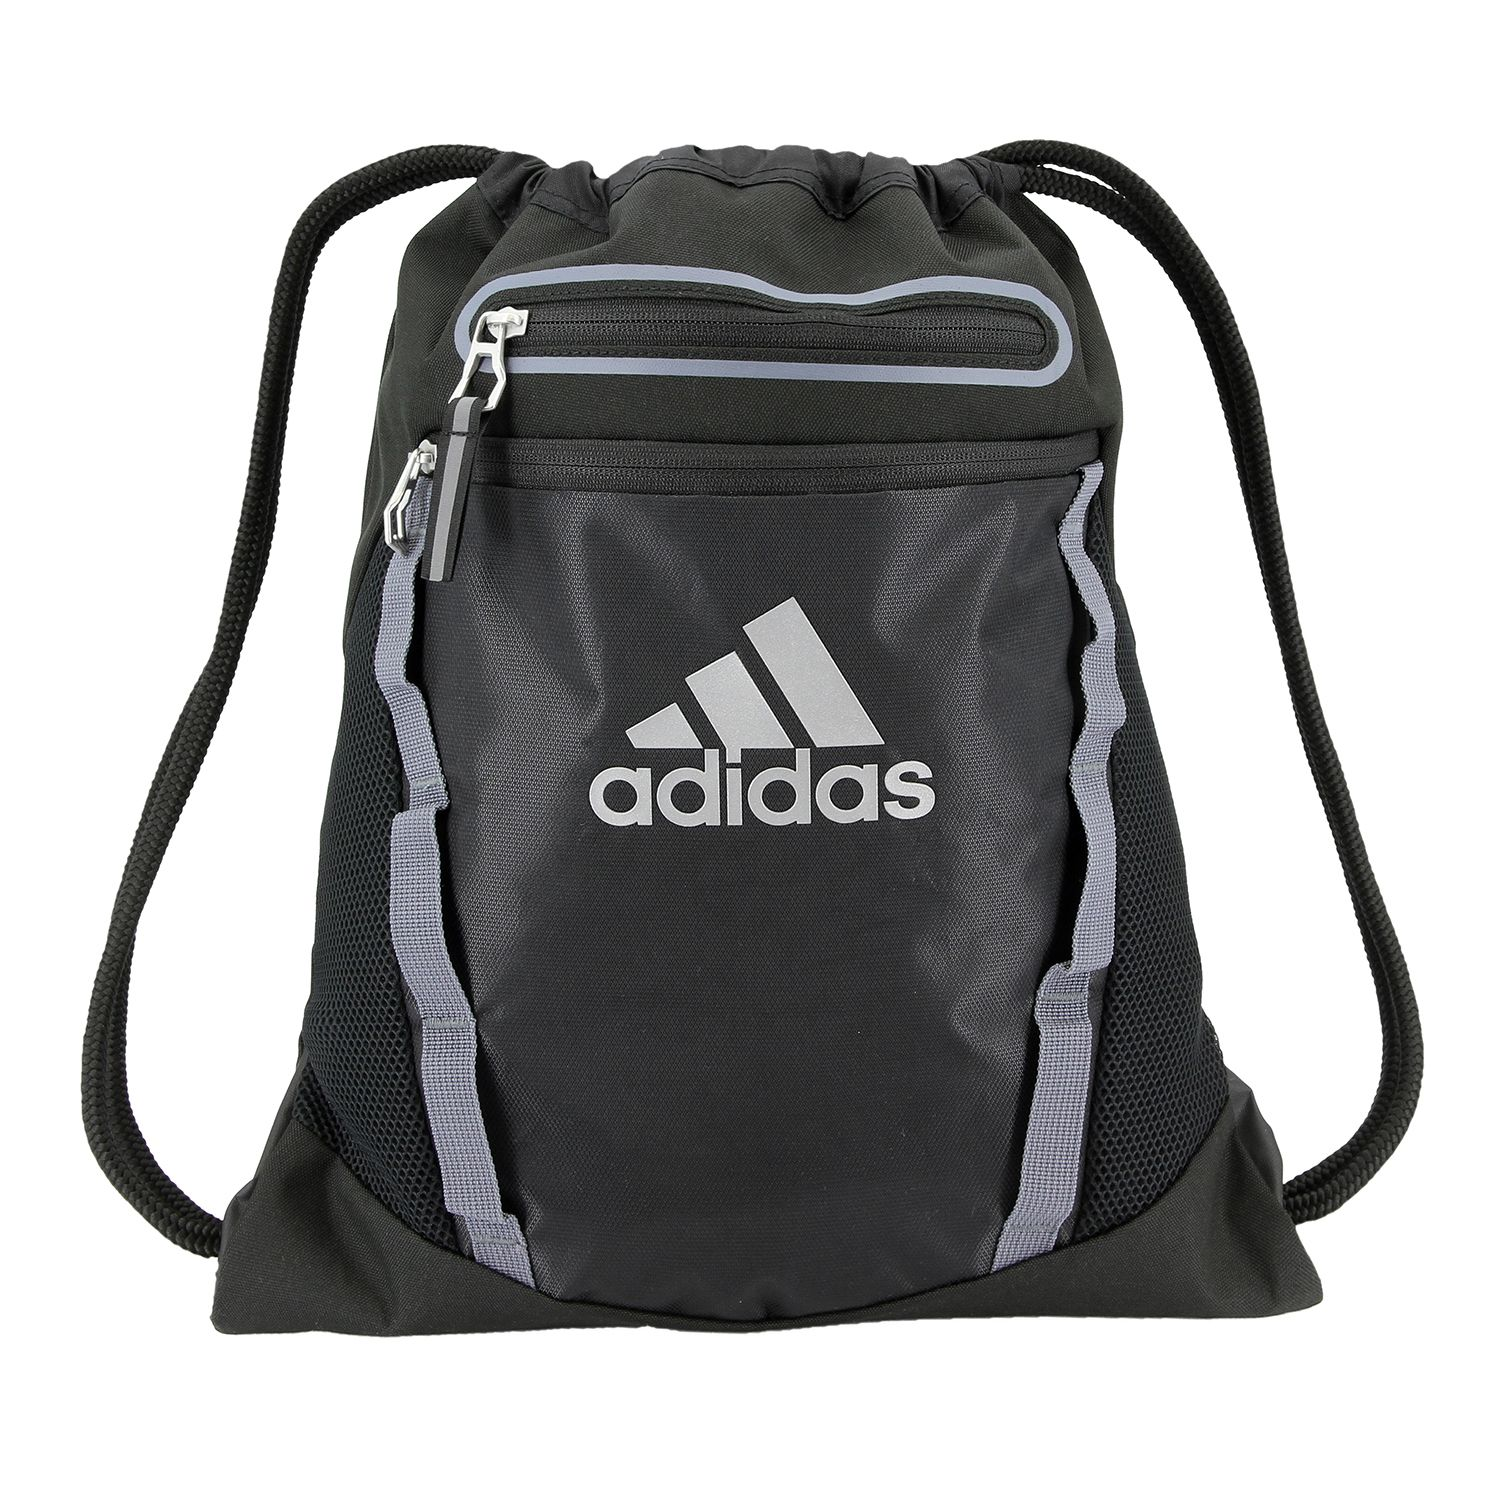 adidas Backpacks   Kohl s 0e9c1f9e0c